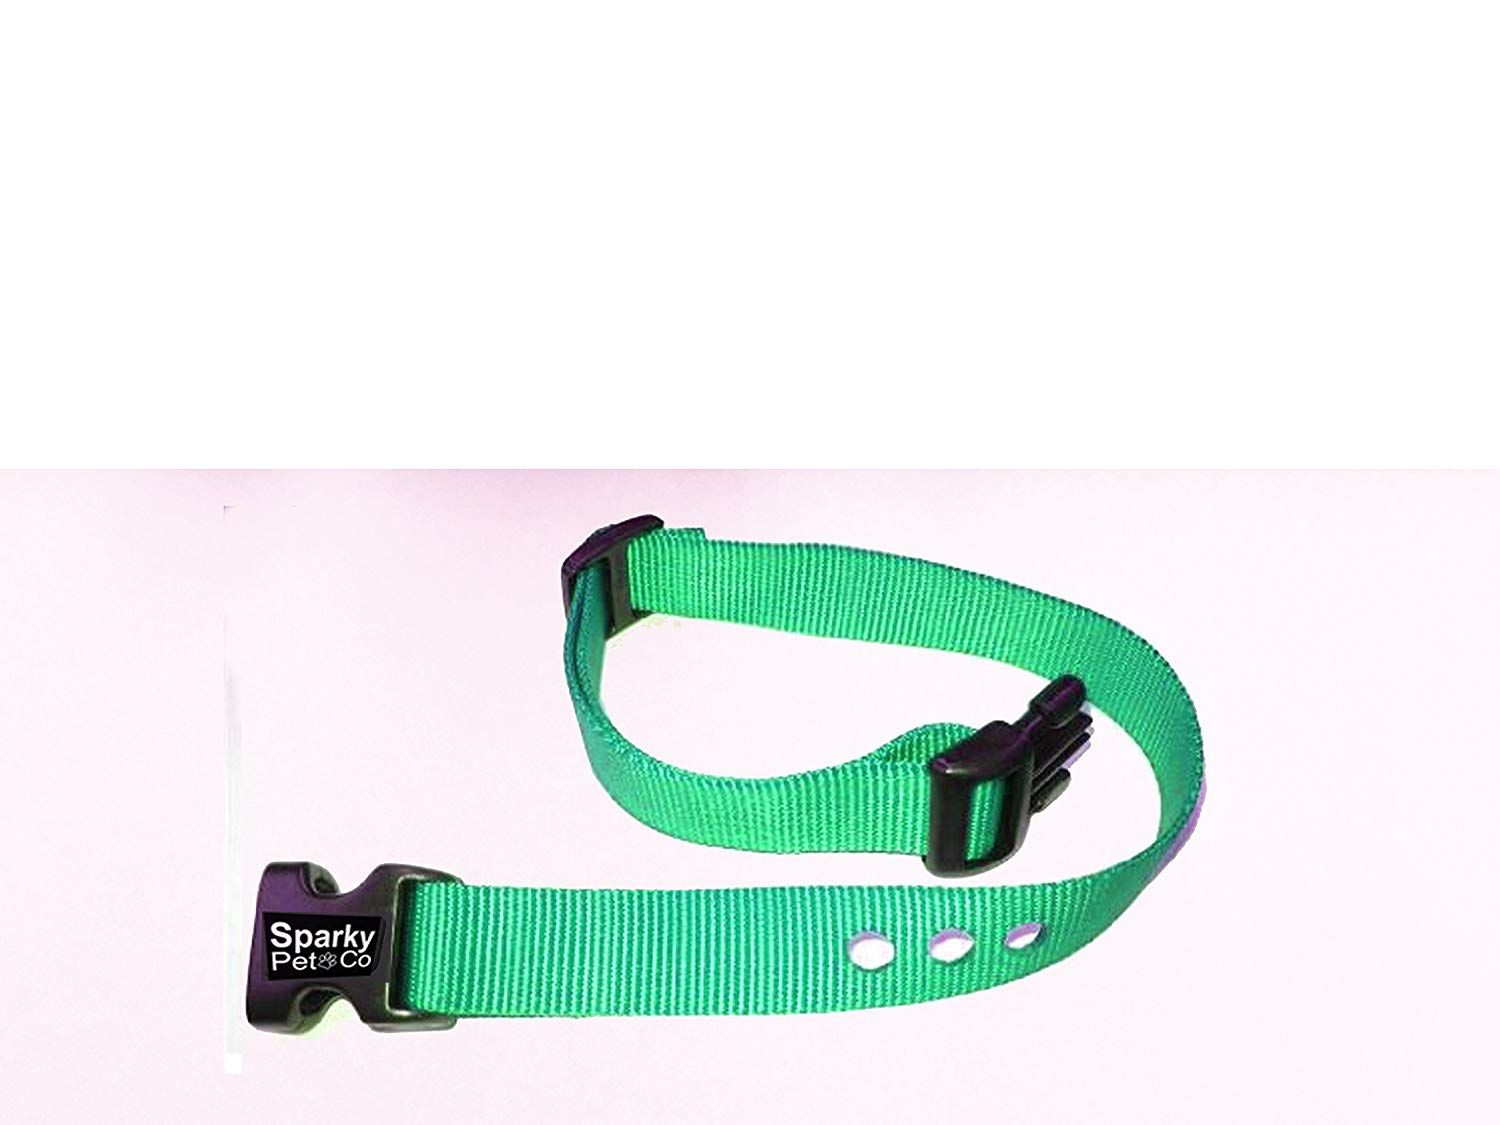 Sparky Petco 3 4 Petsafe Rfa 68 Compatible Basic Deluxe Bark Replacement 3 Consecutive Hole Dog Bark Collar Do Hope That You Actually With Images Petco Dogs Dog Care